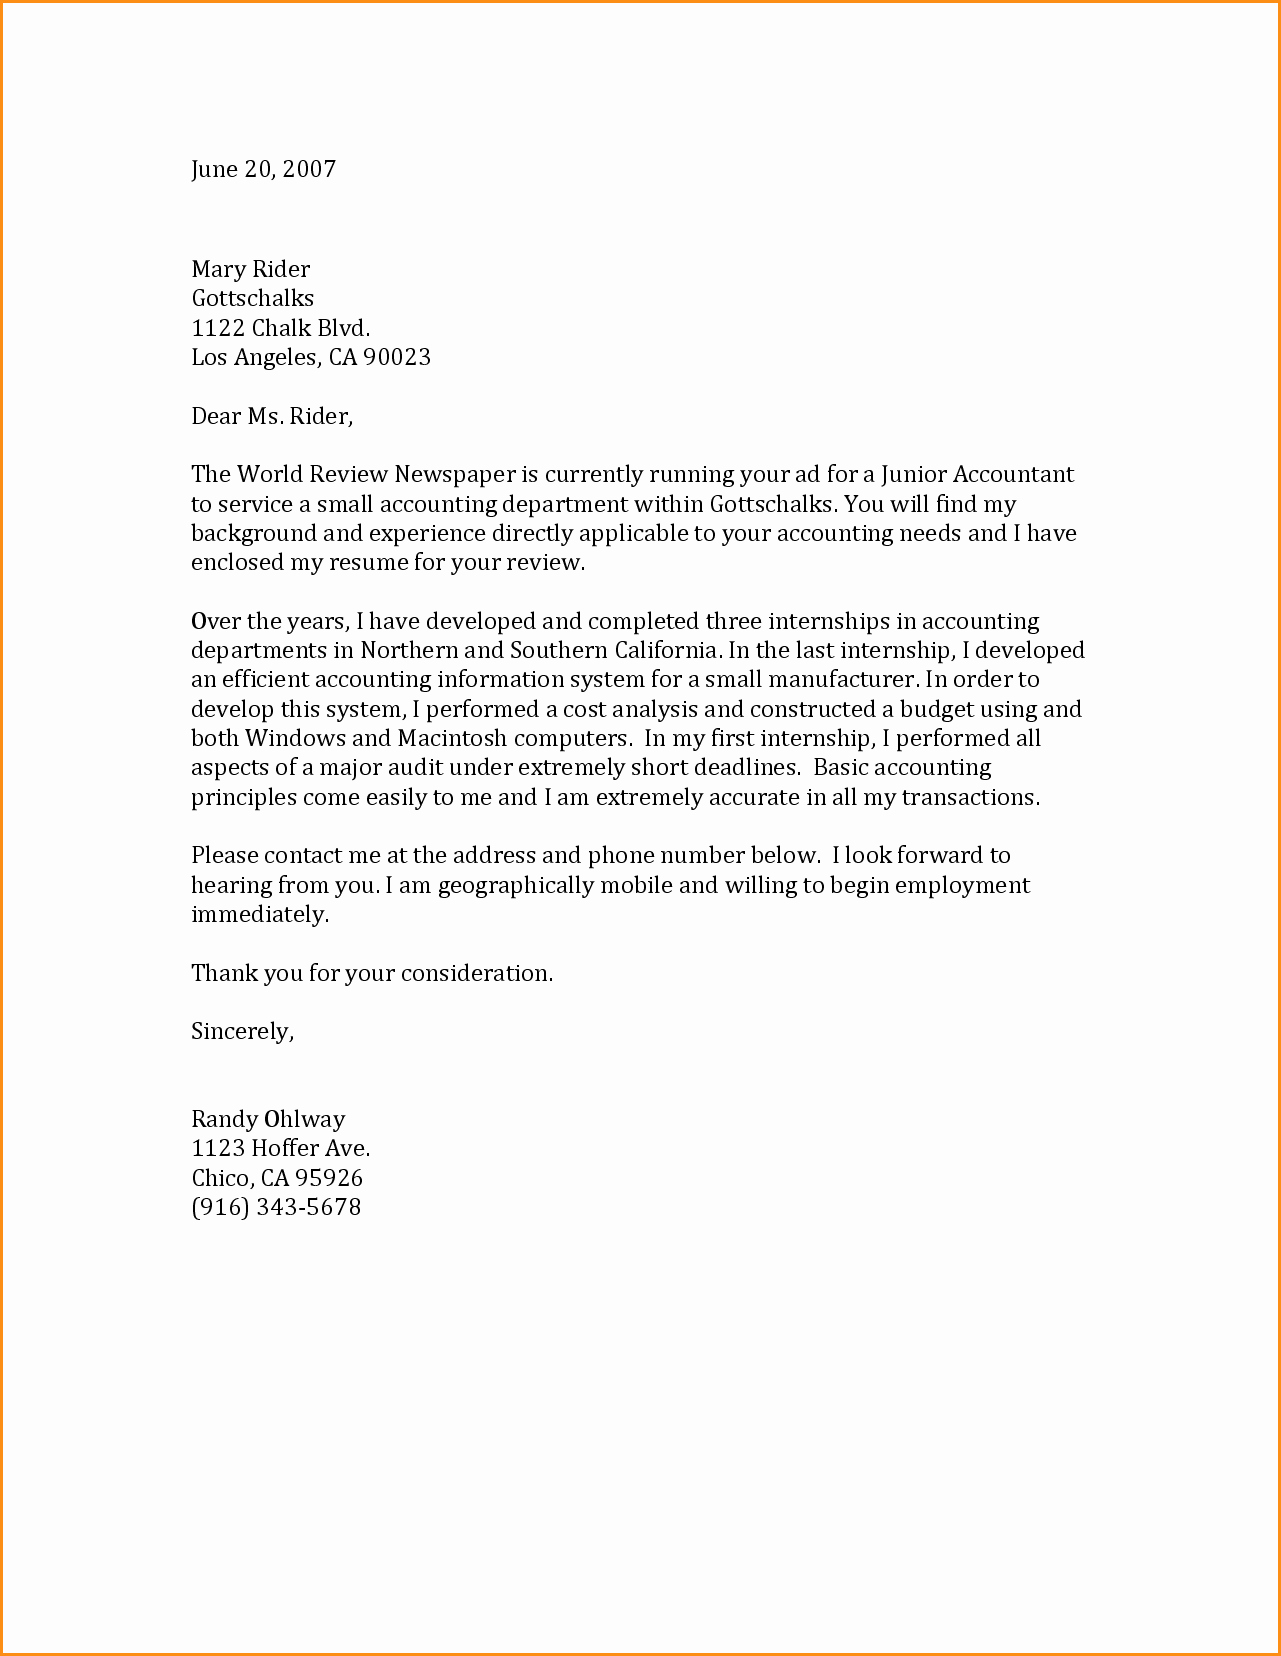 General Cover Letter format Luxury Cover Letter for Resume Template General Sample General